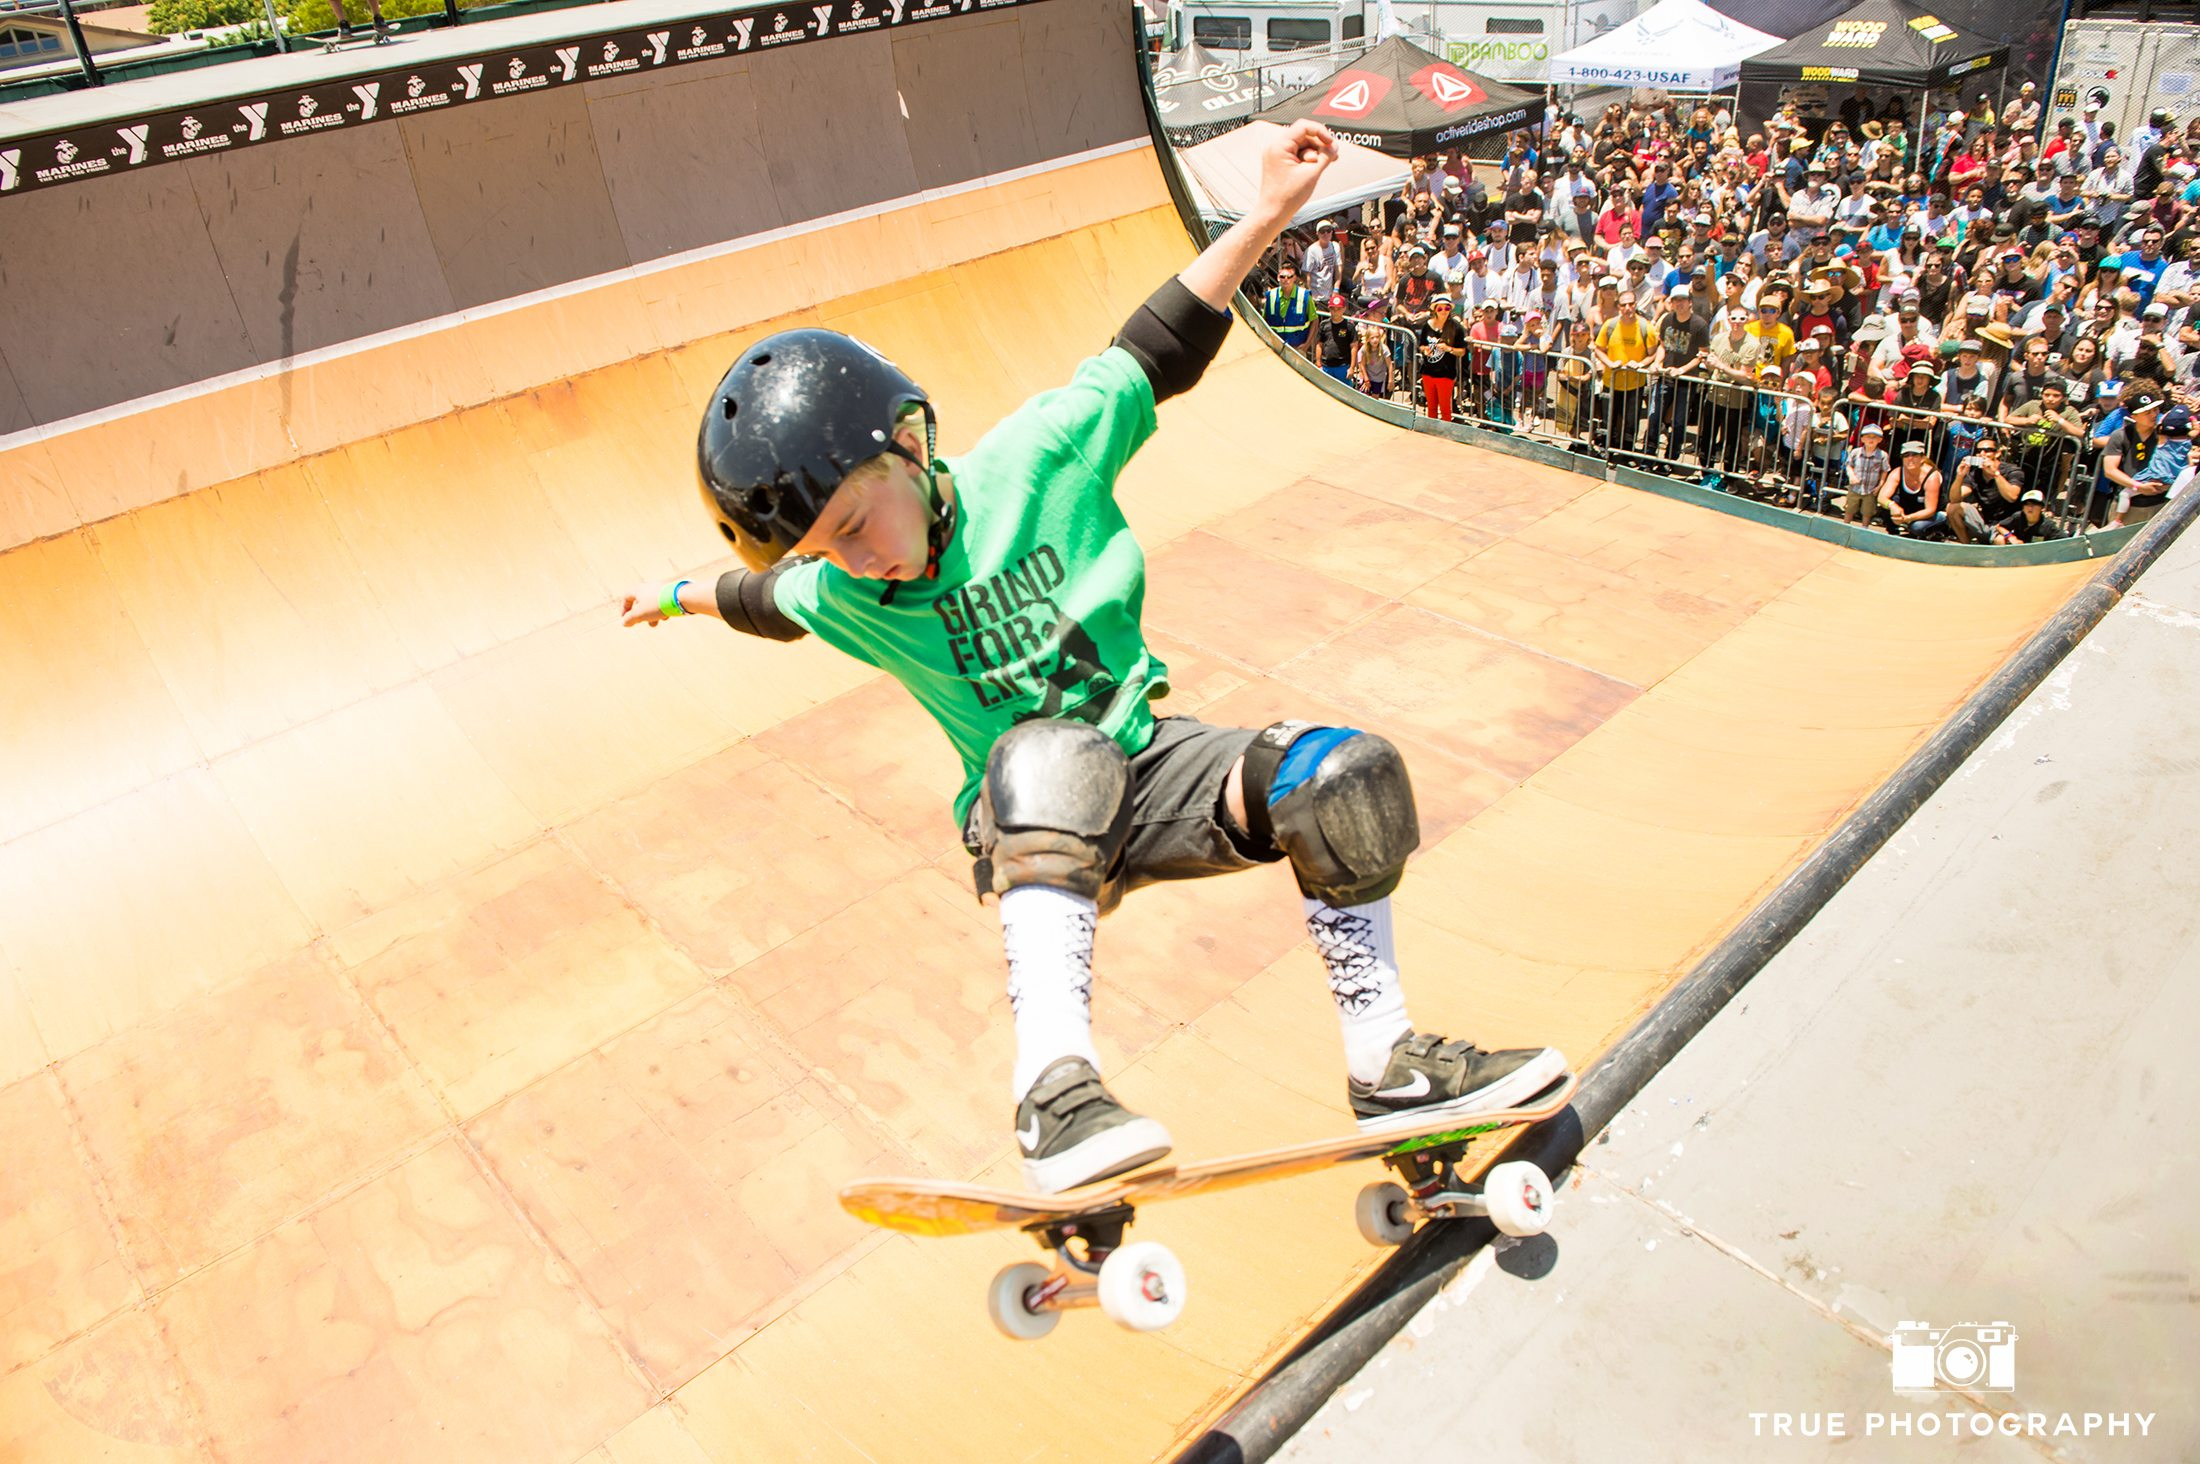 Tony Hawk Skateboarding Half Pipe San Diego 9 Year Old Shredder